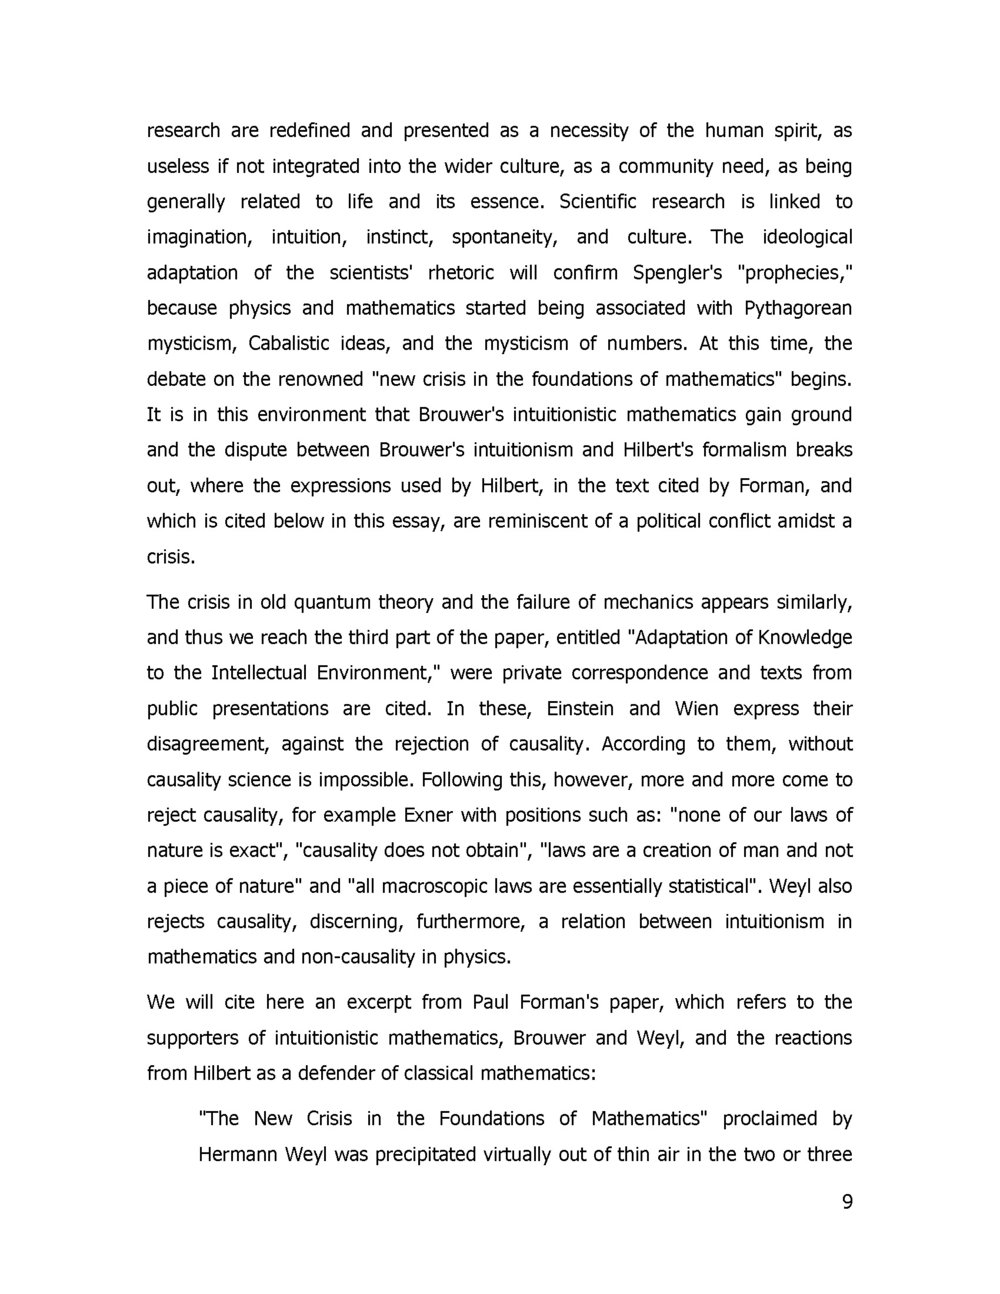 Timpilis, Dimitris (2011) Social and Cultural Approaches to the New Crisis in the Foundations of Mathematics, L. E. J. Brouwer's Free Will versus Leibniz's Dream_Page_10.jpg